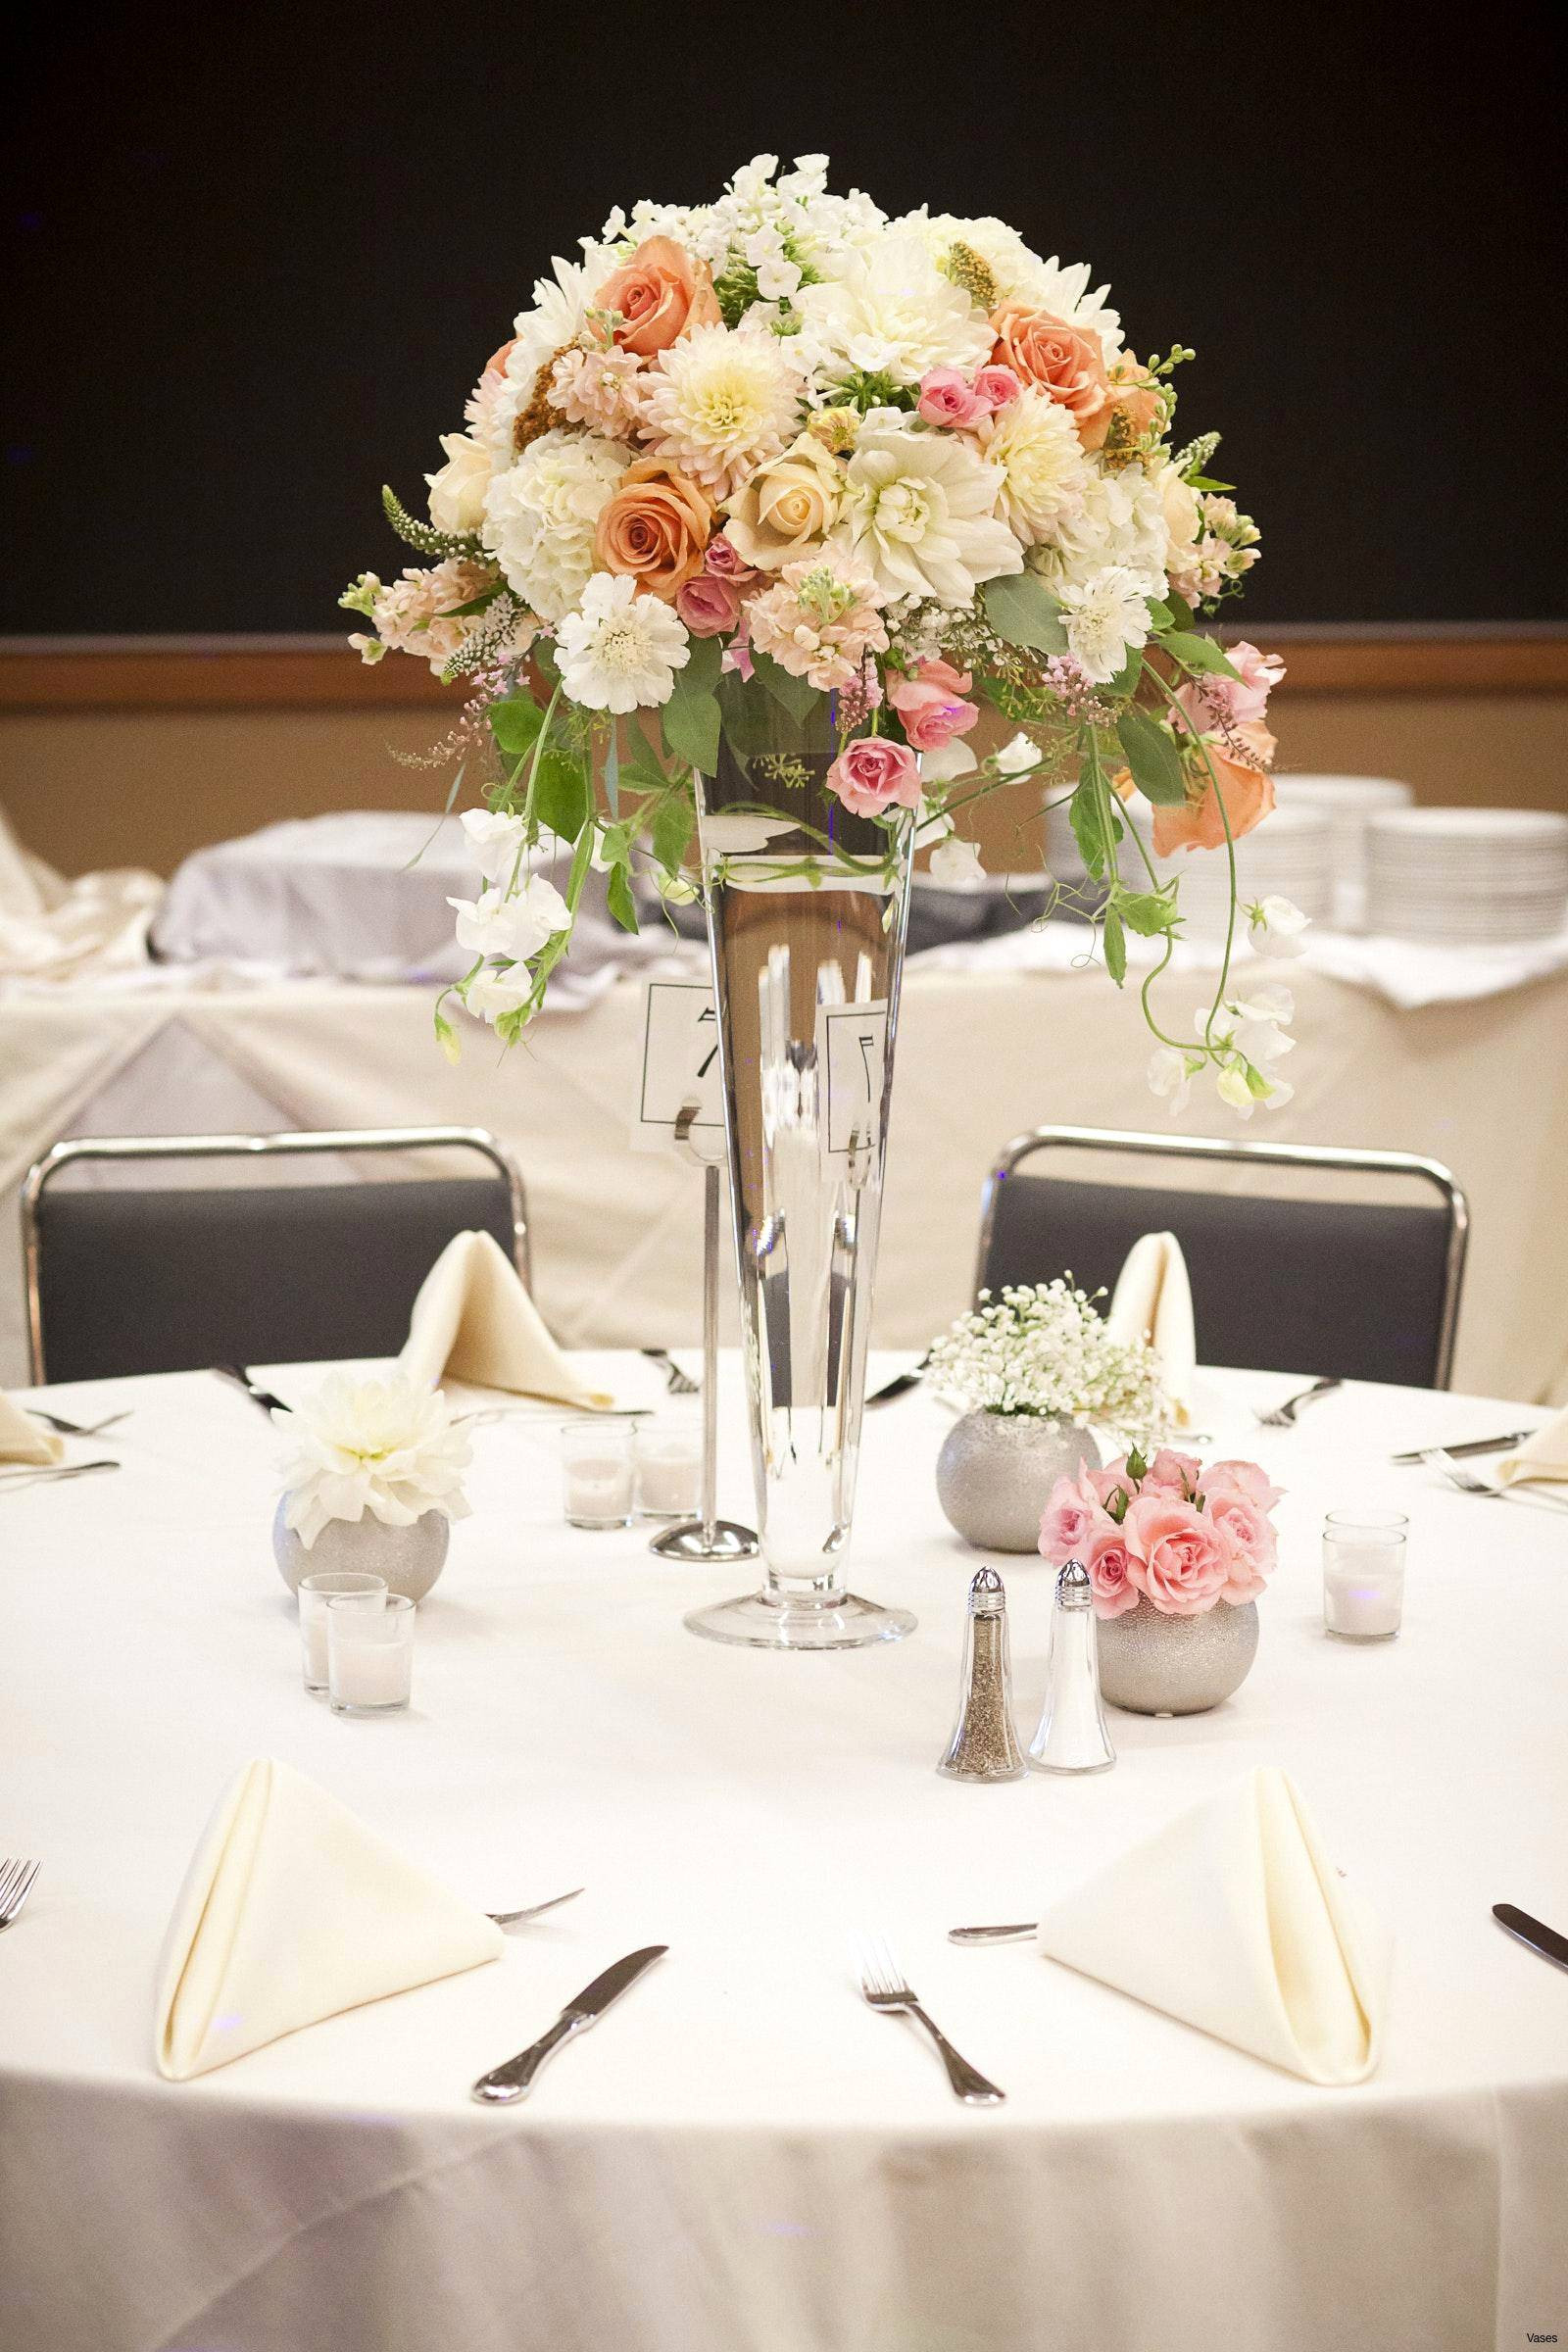 cowboy boot vases wholesale of fresh 50 tables at wedding receptions wedding l com in tables at wedding receptions greatest living room vases wedding inspirational h vases candy vase i 0d